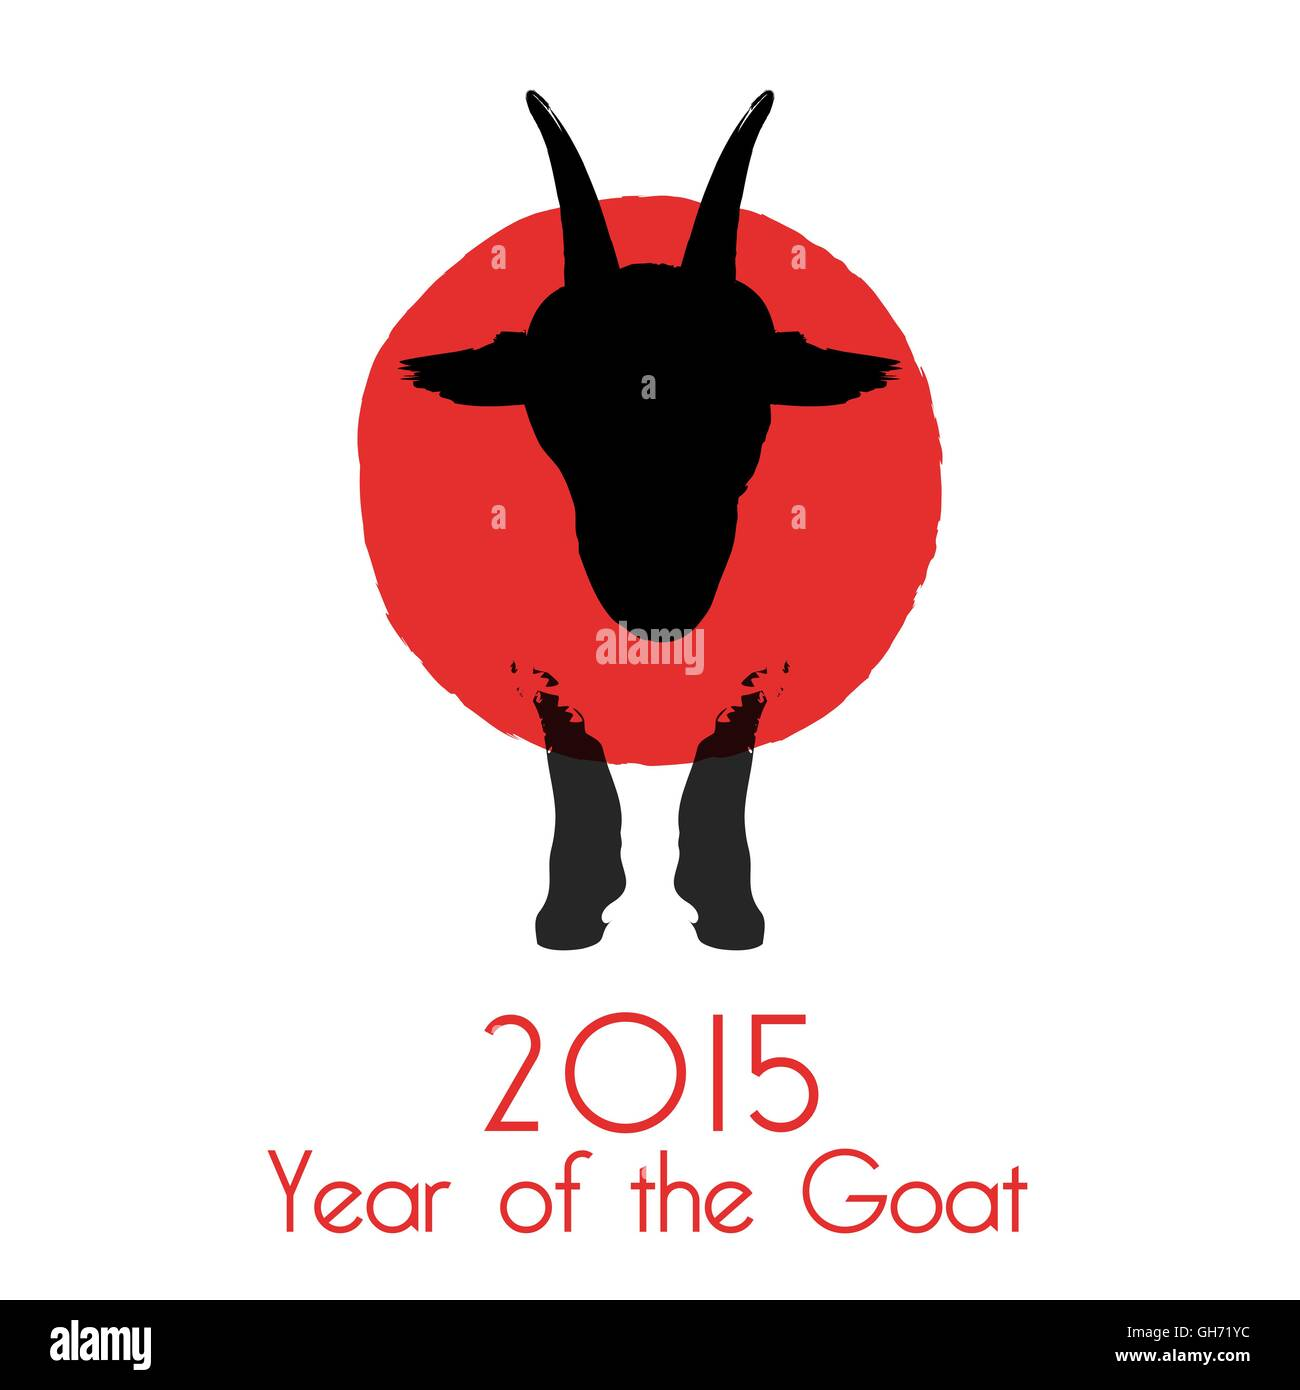 Chinese New Year of the Goat 2015. Vector illustration. - Stock Image